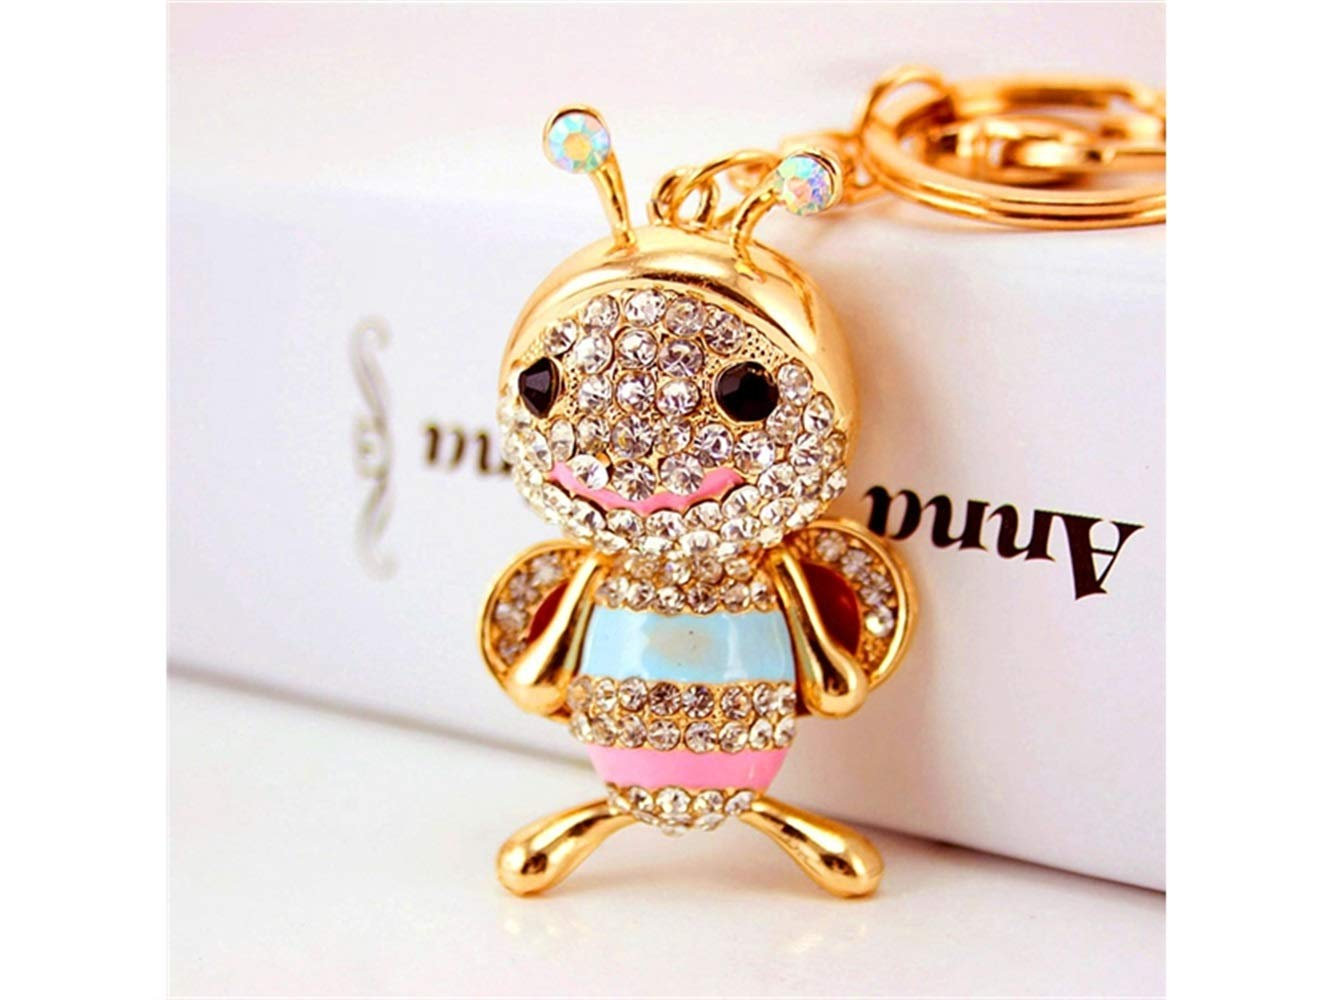 Special Exquisite Cute Little Bee Keychain Animal Key Trinket Car Bag Key Holder Decorations(Colorful) Bag Pendant